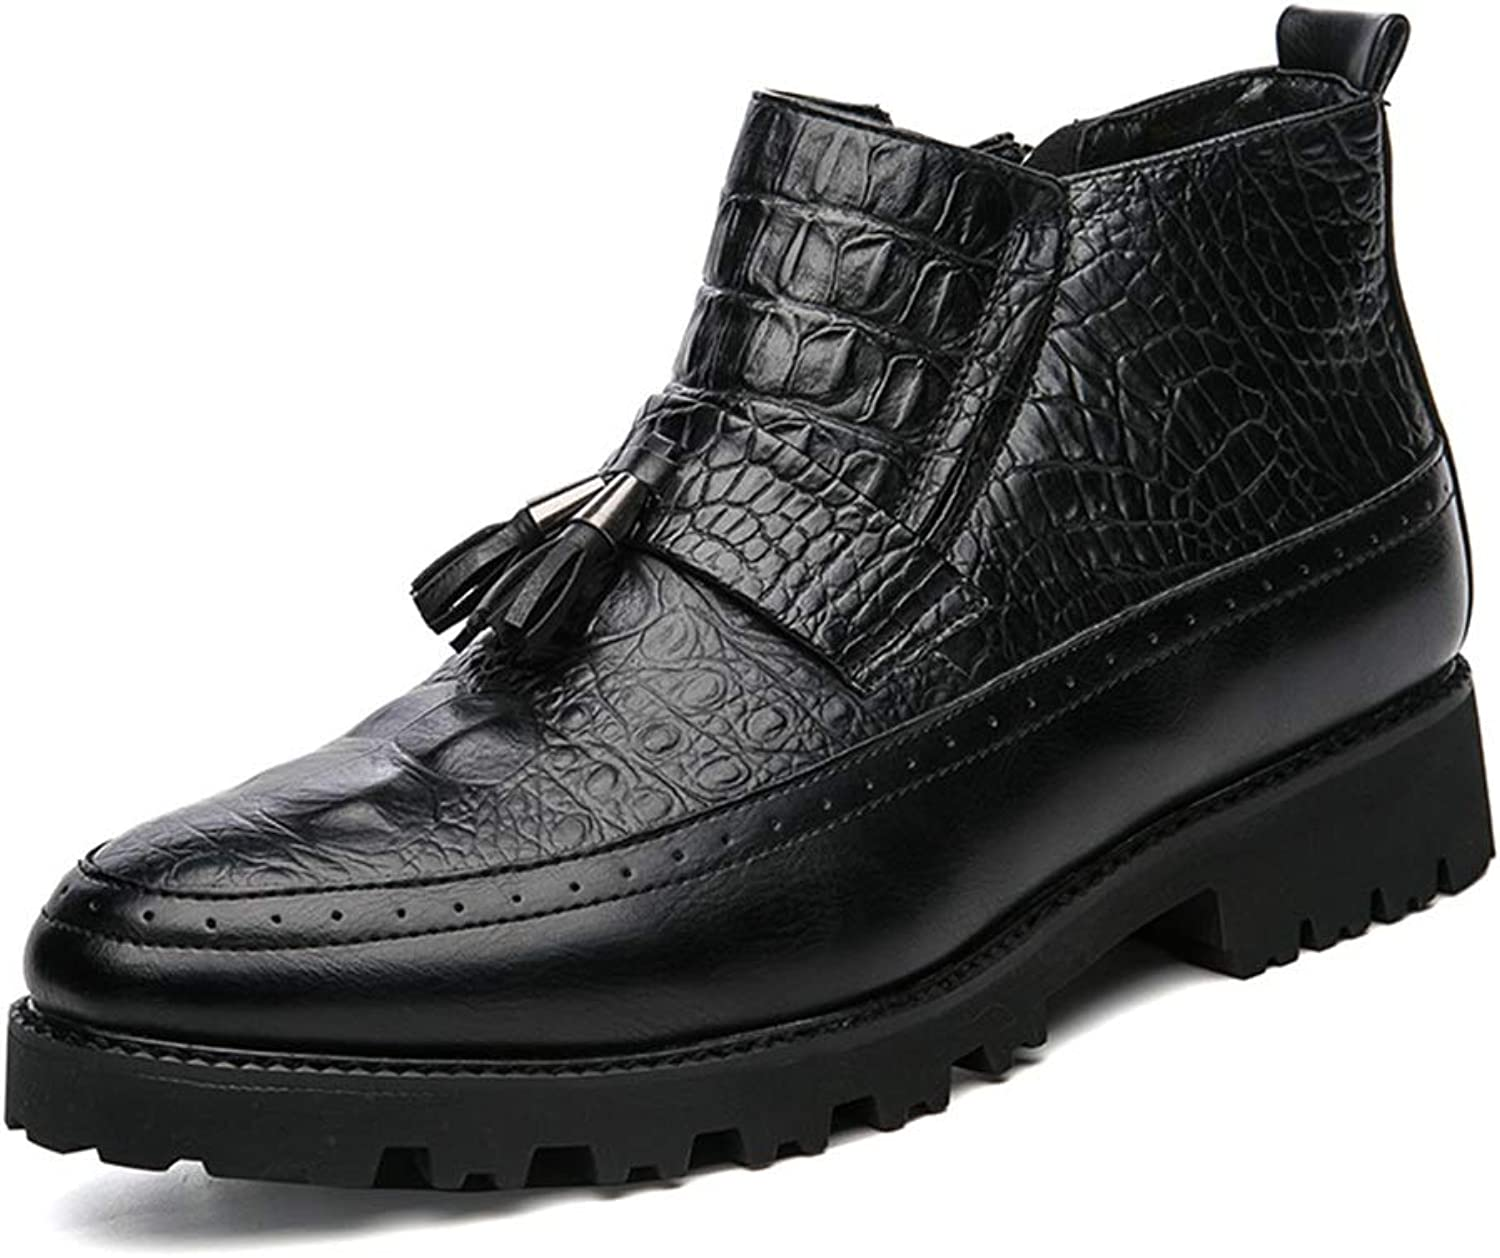 Men's Fashion Ankle Work Boot Casual Personality Crocodile Classic Tassel High Top Boot.